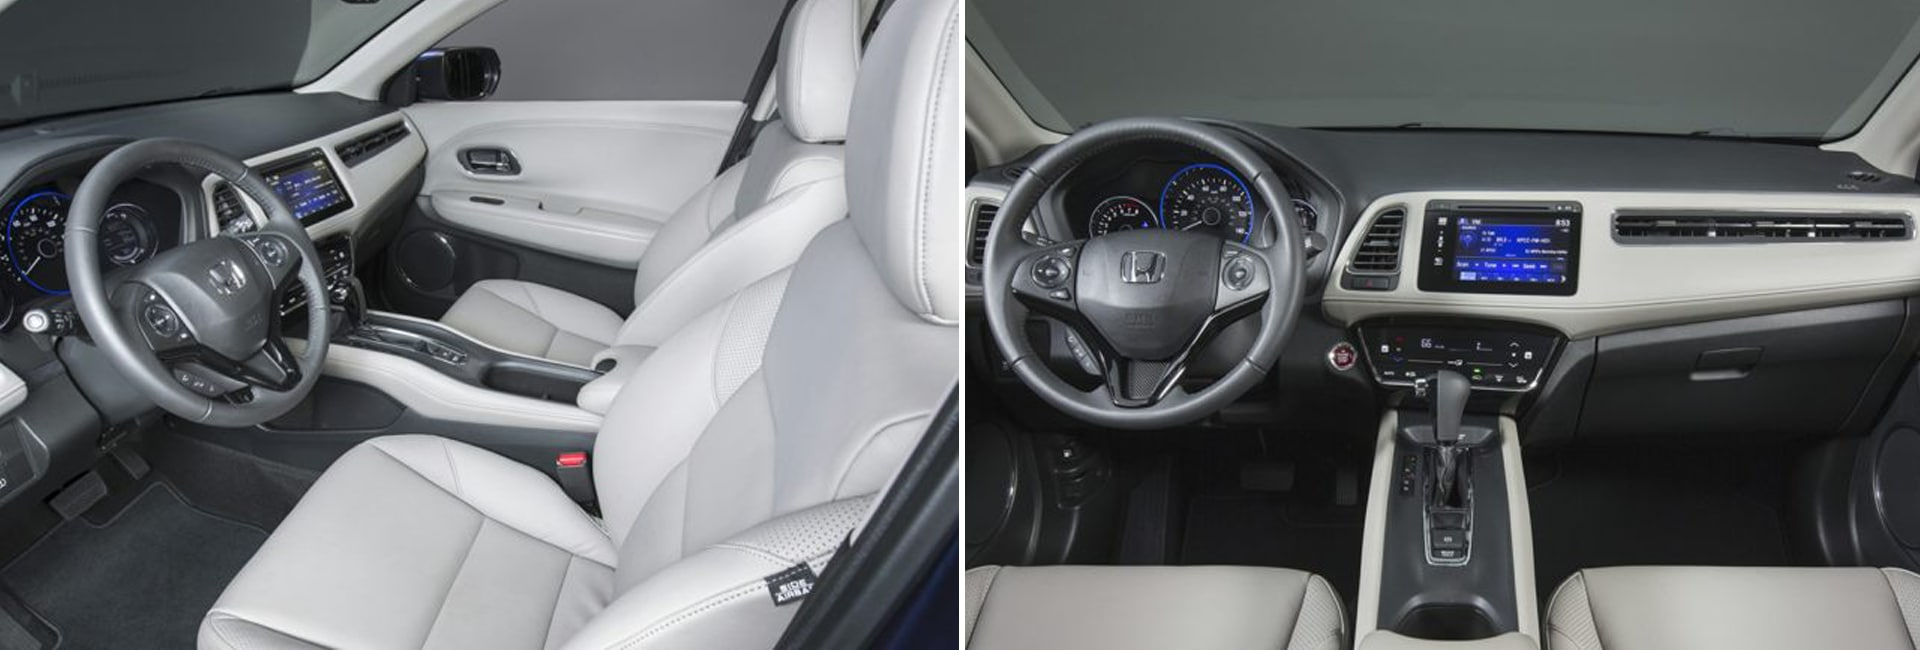 Honda HR-V Interior Vehicle Features